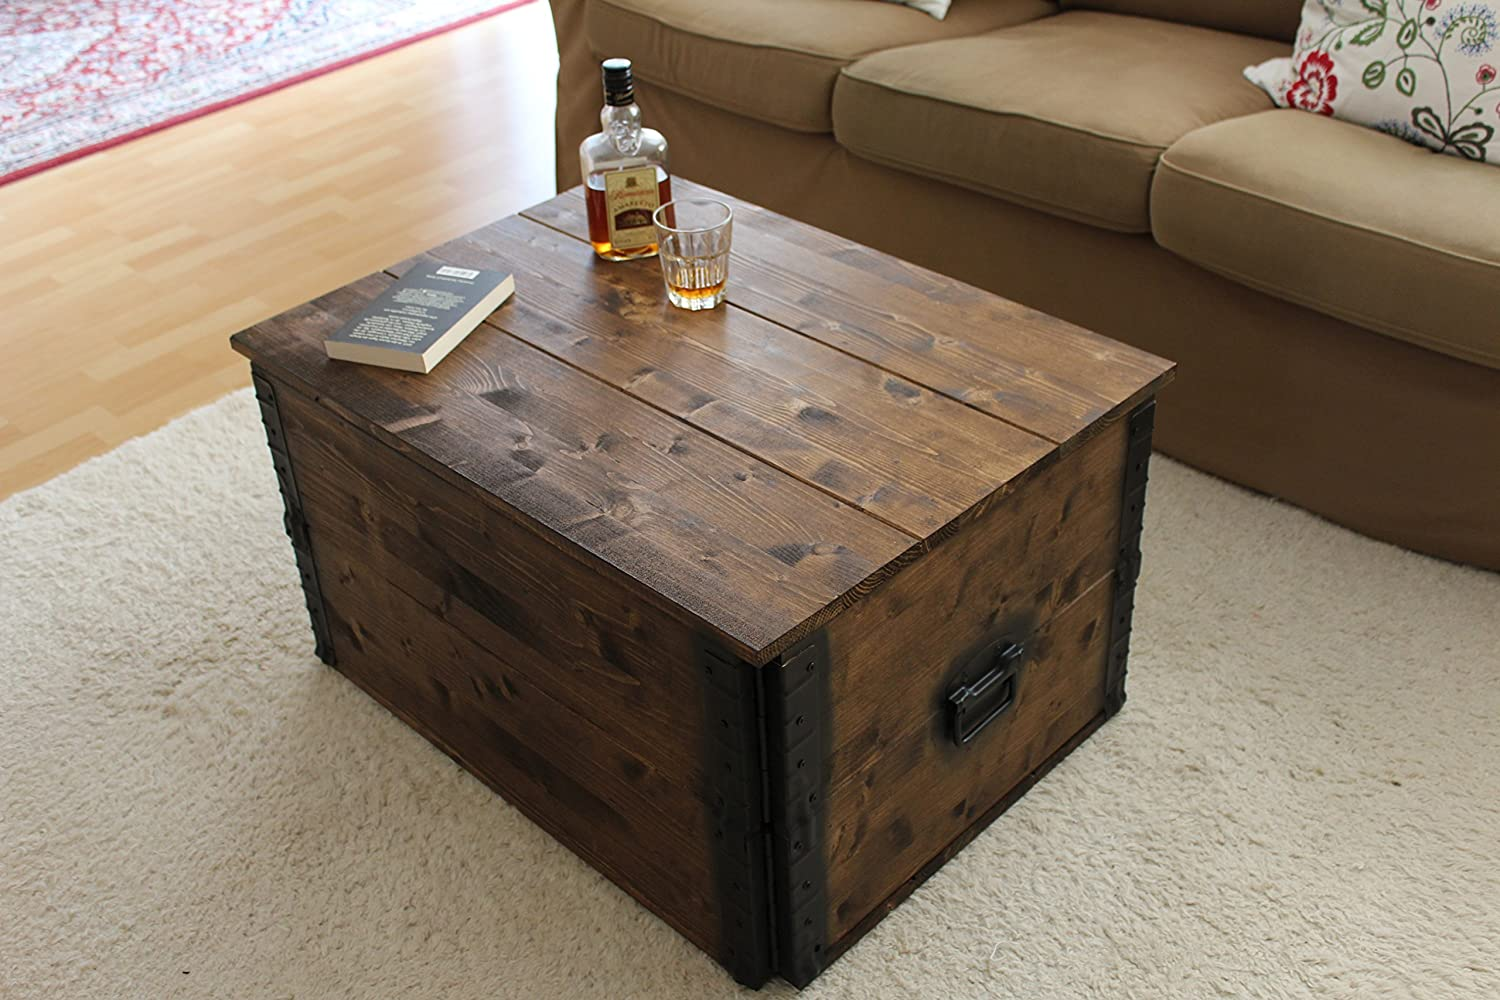 Tables Uncle Joes´s Wooden Chest in Brown in Vintage Style Shabby